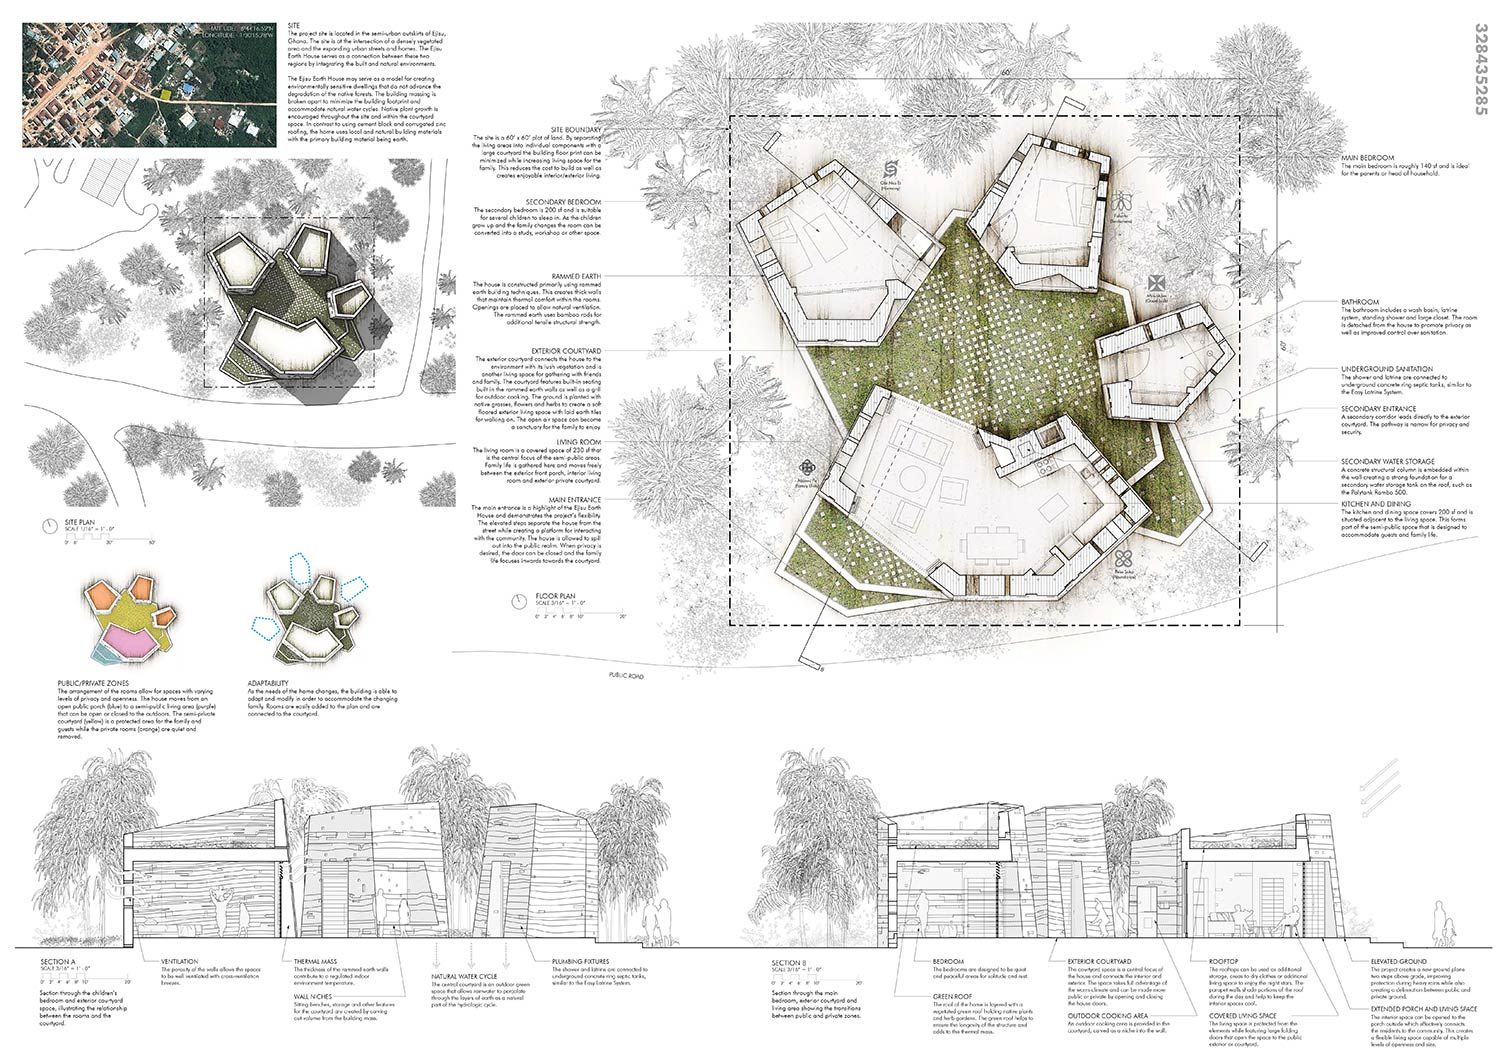 Architecture House Competition mud house design competition - winners announced | urbanland